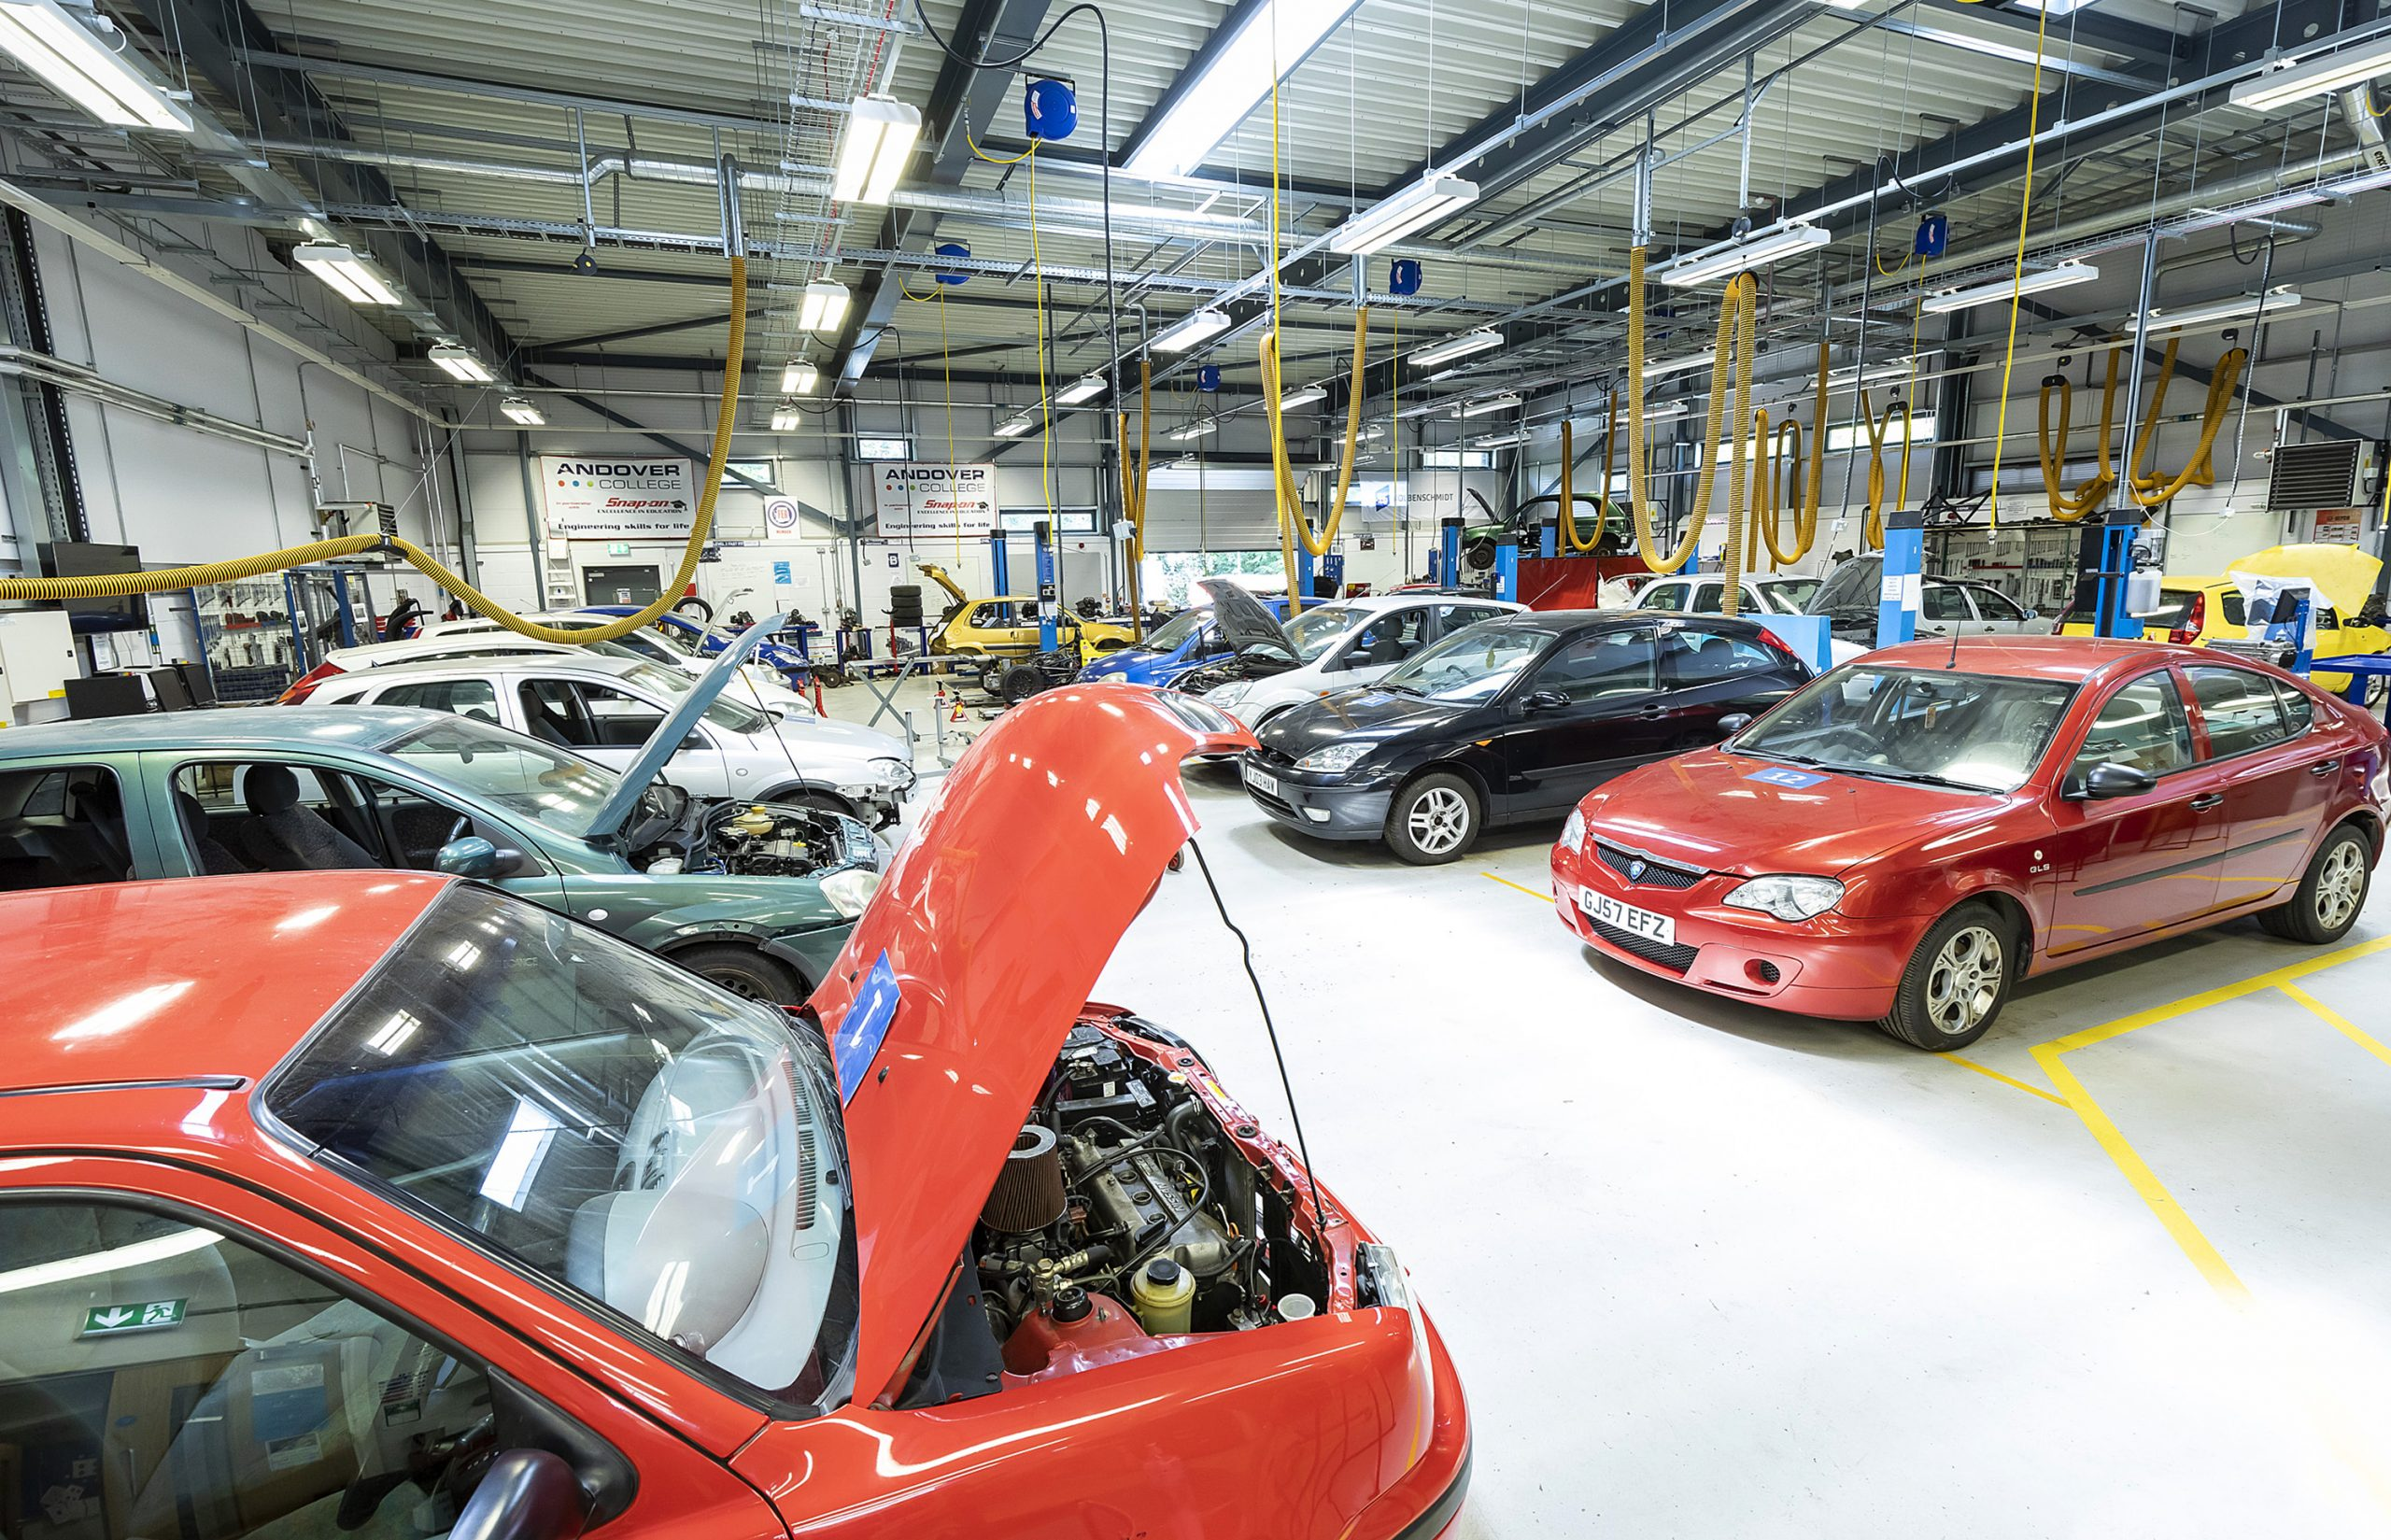 Motor Vehicle Workshop at Andover College